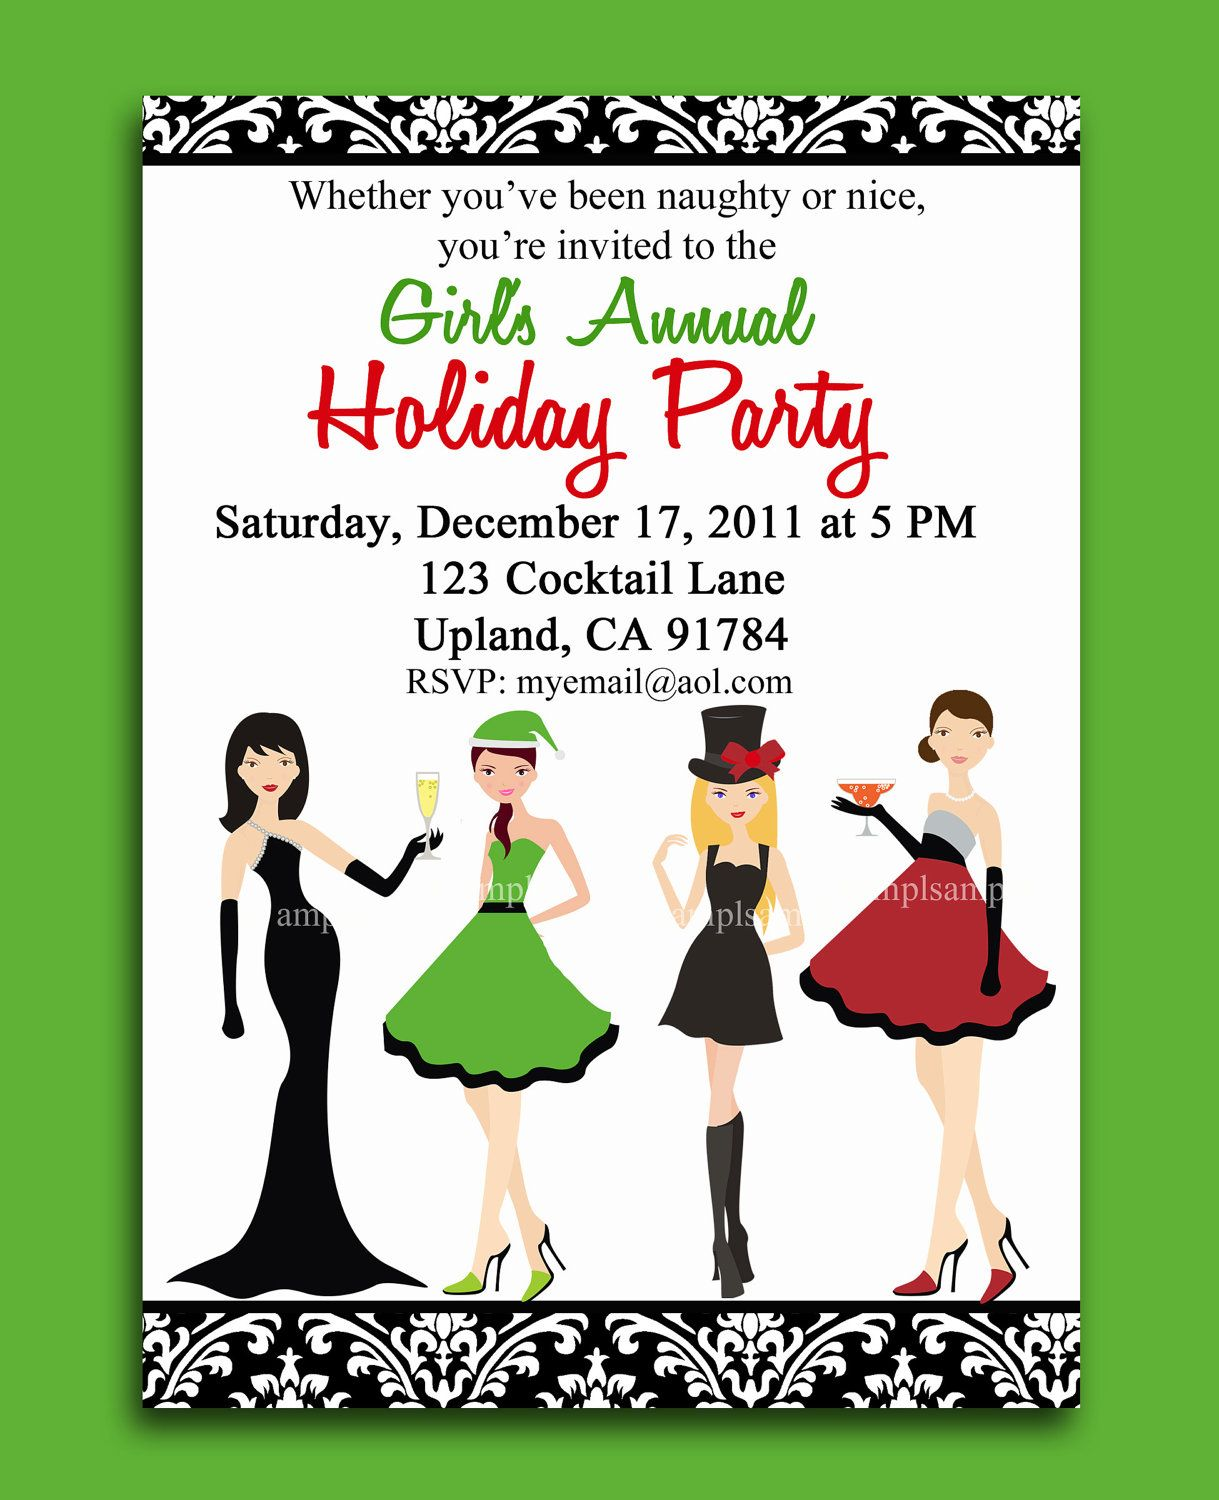 Christmas cocktail party invitation printable girls night out christmas cocktail party invitation printable girls night out 1500 via etsy monicamarmolfo Image collections